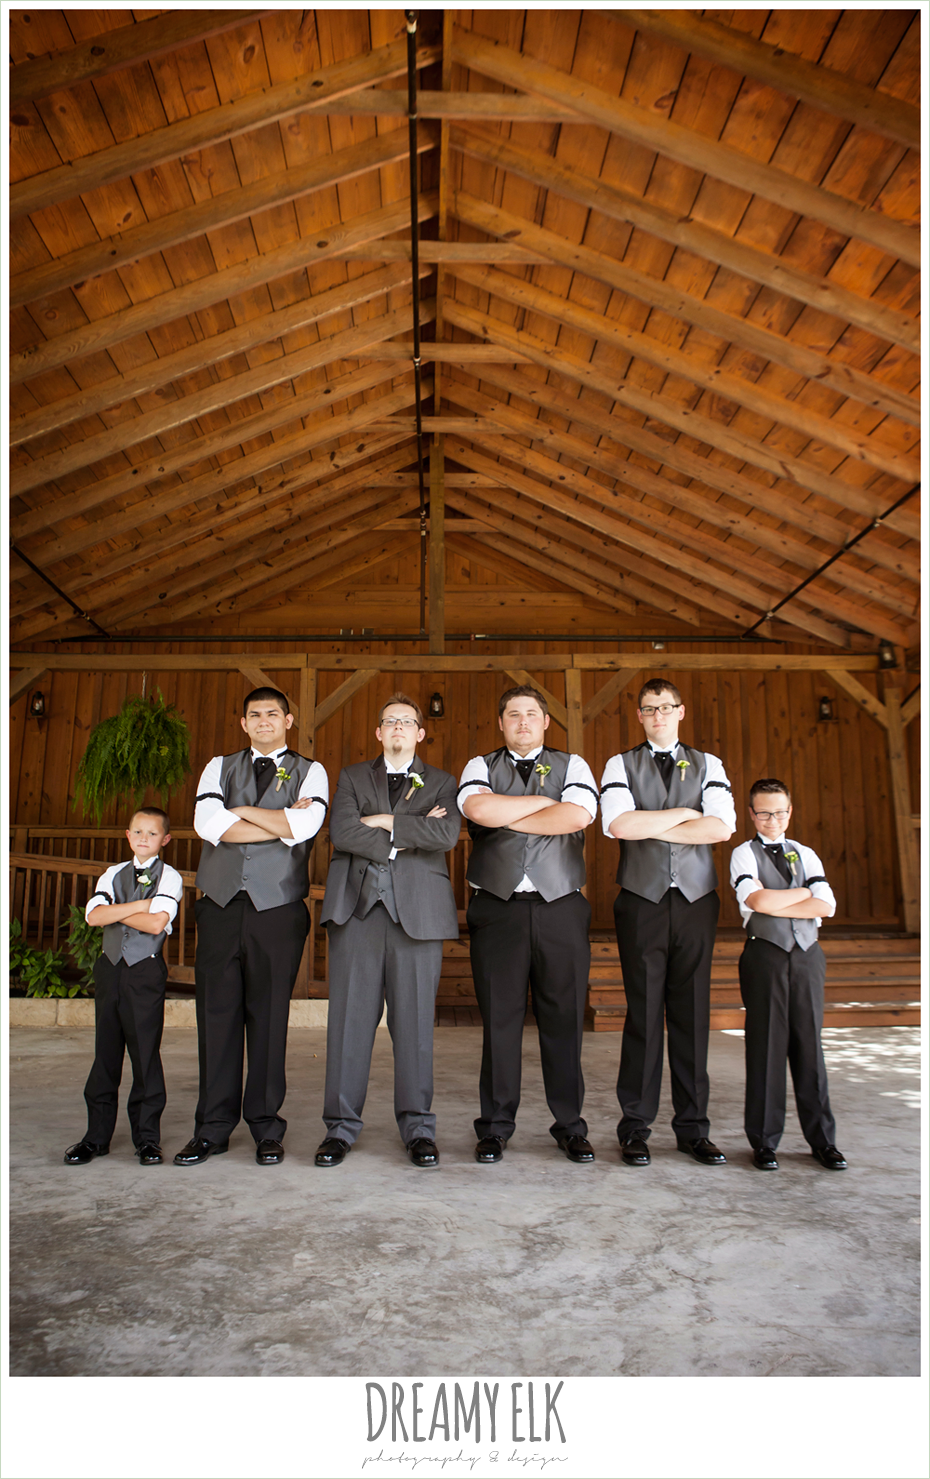 groom and groomsmen, bridal party, amber springs summer wedding photo {dreamy elk photography and design}